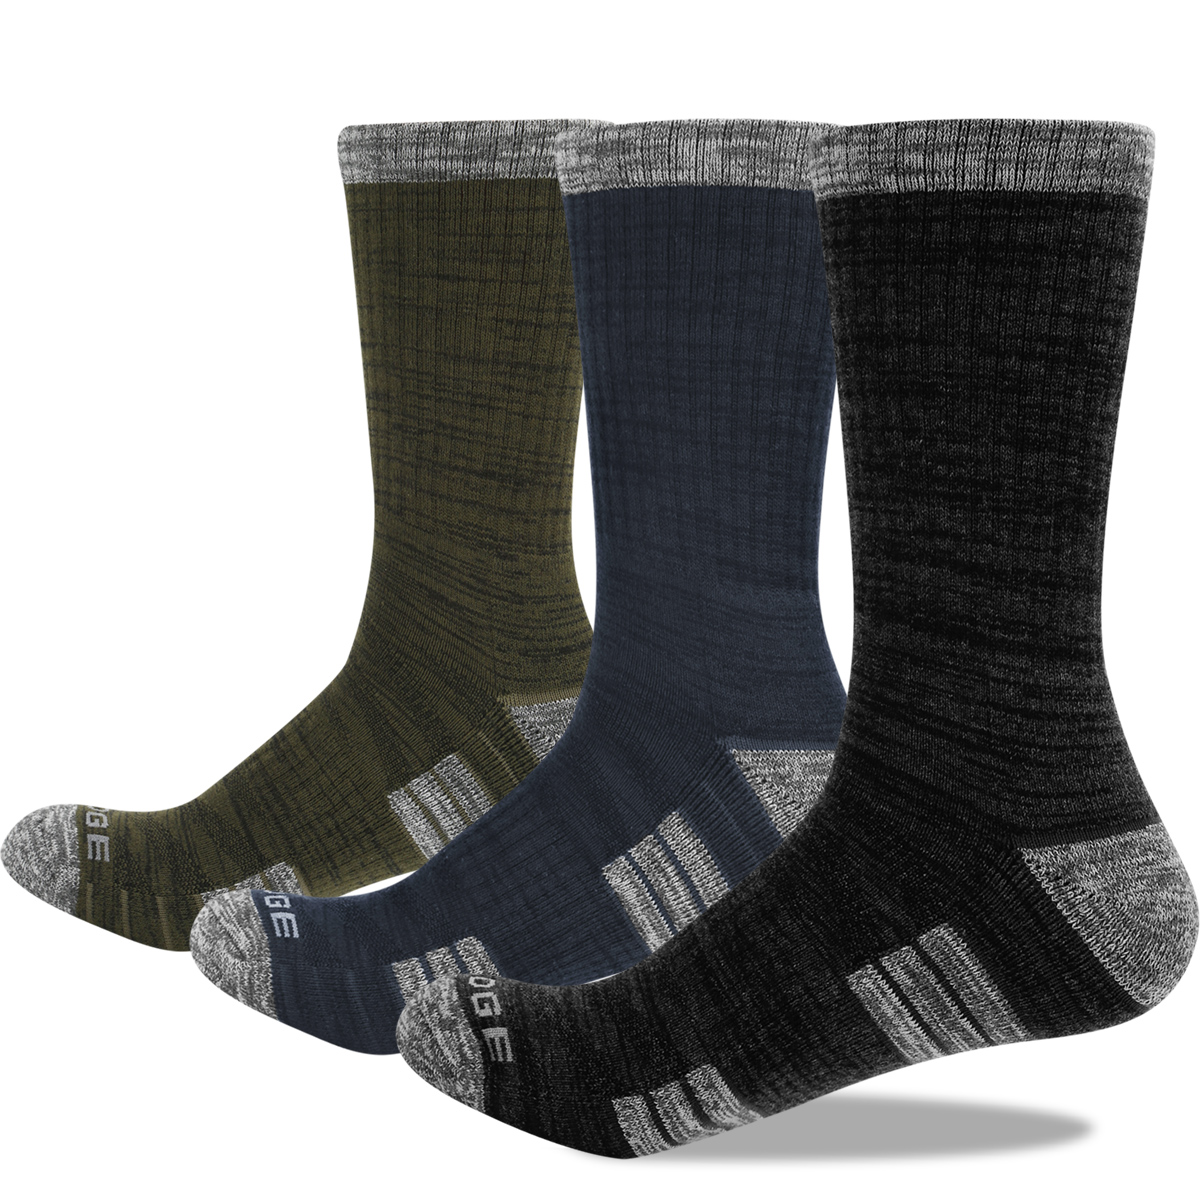 3PM1807 Male Cushion Combed Cotton Crew Hiking Socks Athletic Sports Socks(3 Pairs/Pack)